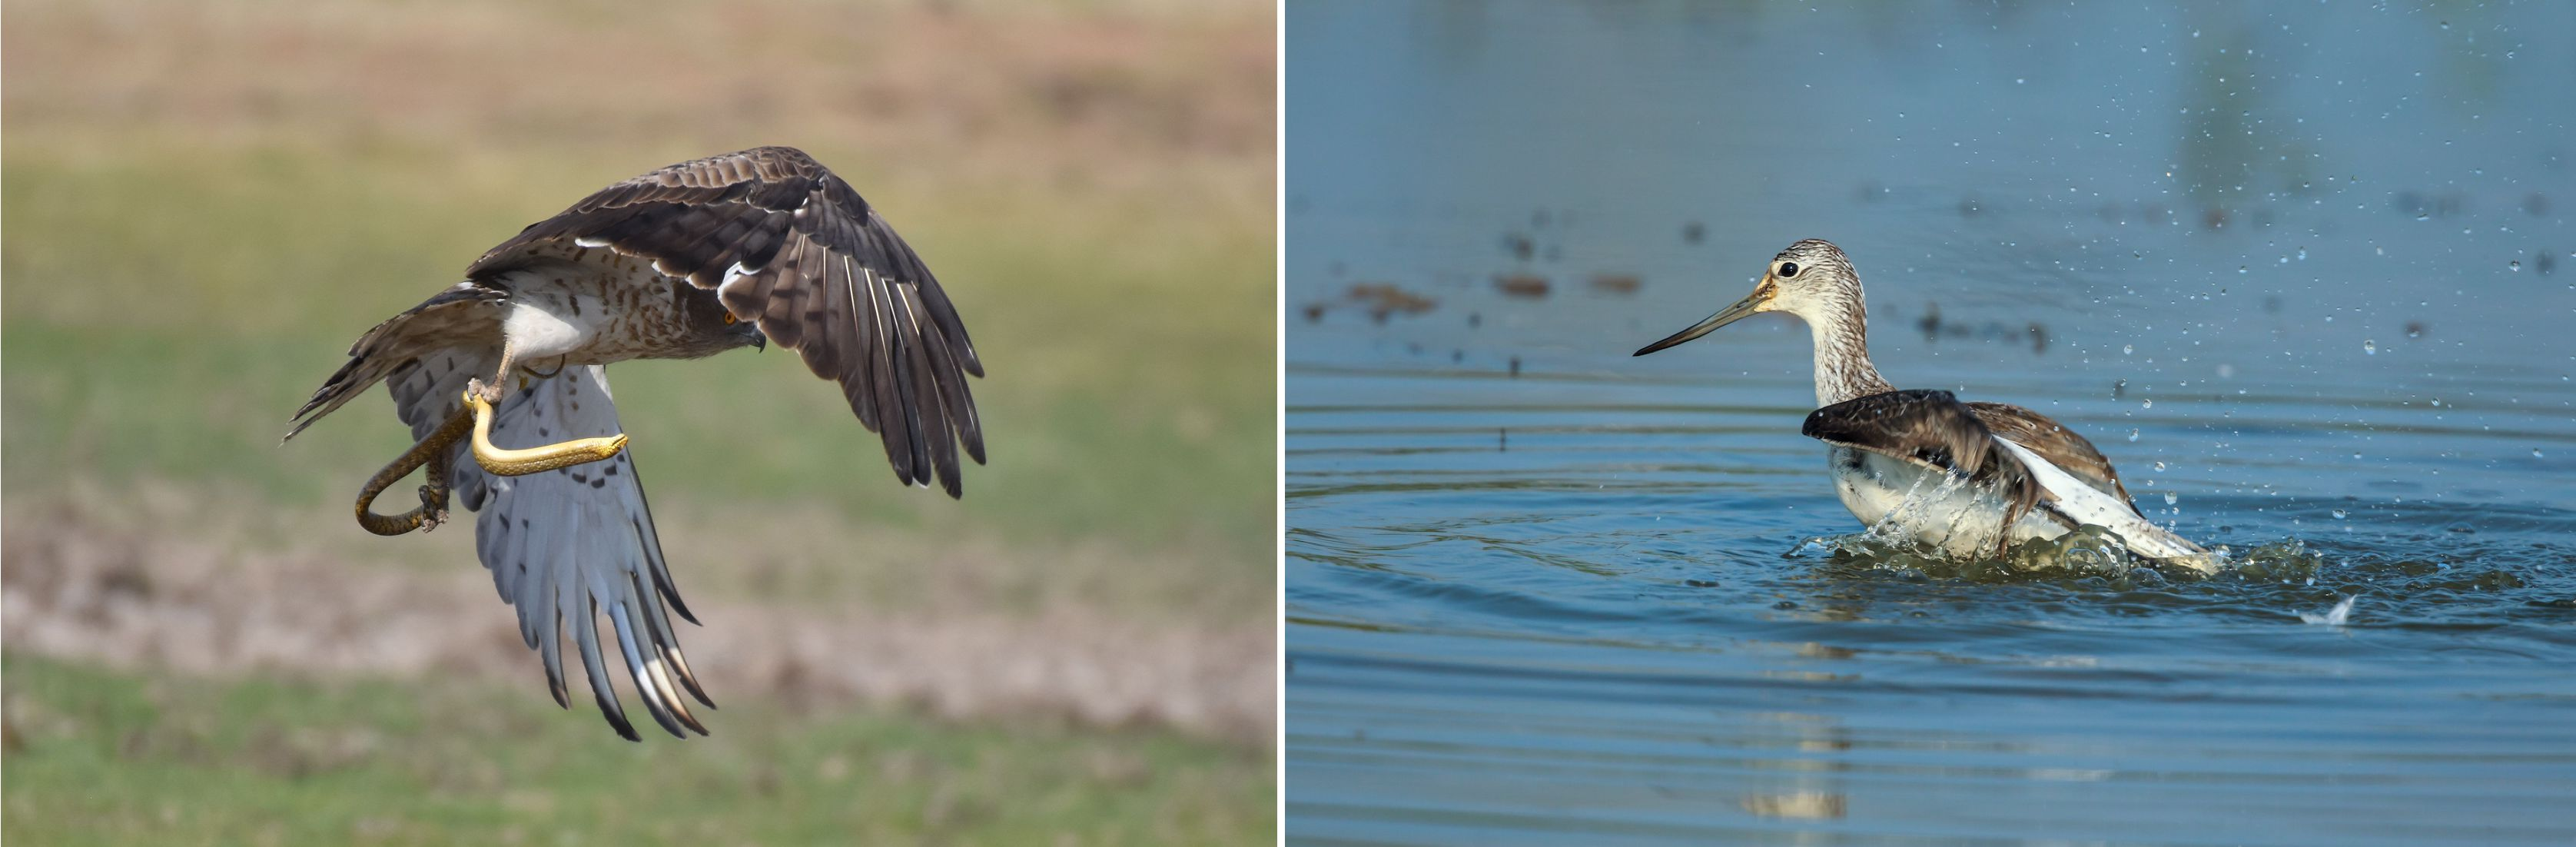 Short-toed snake eagle, a commonly seen raptor that hunts during the day and rests at night, takes off with a catch (left). The common greenshank is often seen wading in wetlands, foraging by sweeping the waters with its long bill. This one was photographed in Goa (right). Photo: AshishTripurwar CC BY-SA 4.0 (left), Edwin Godinho/Shutterstock (right)